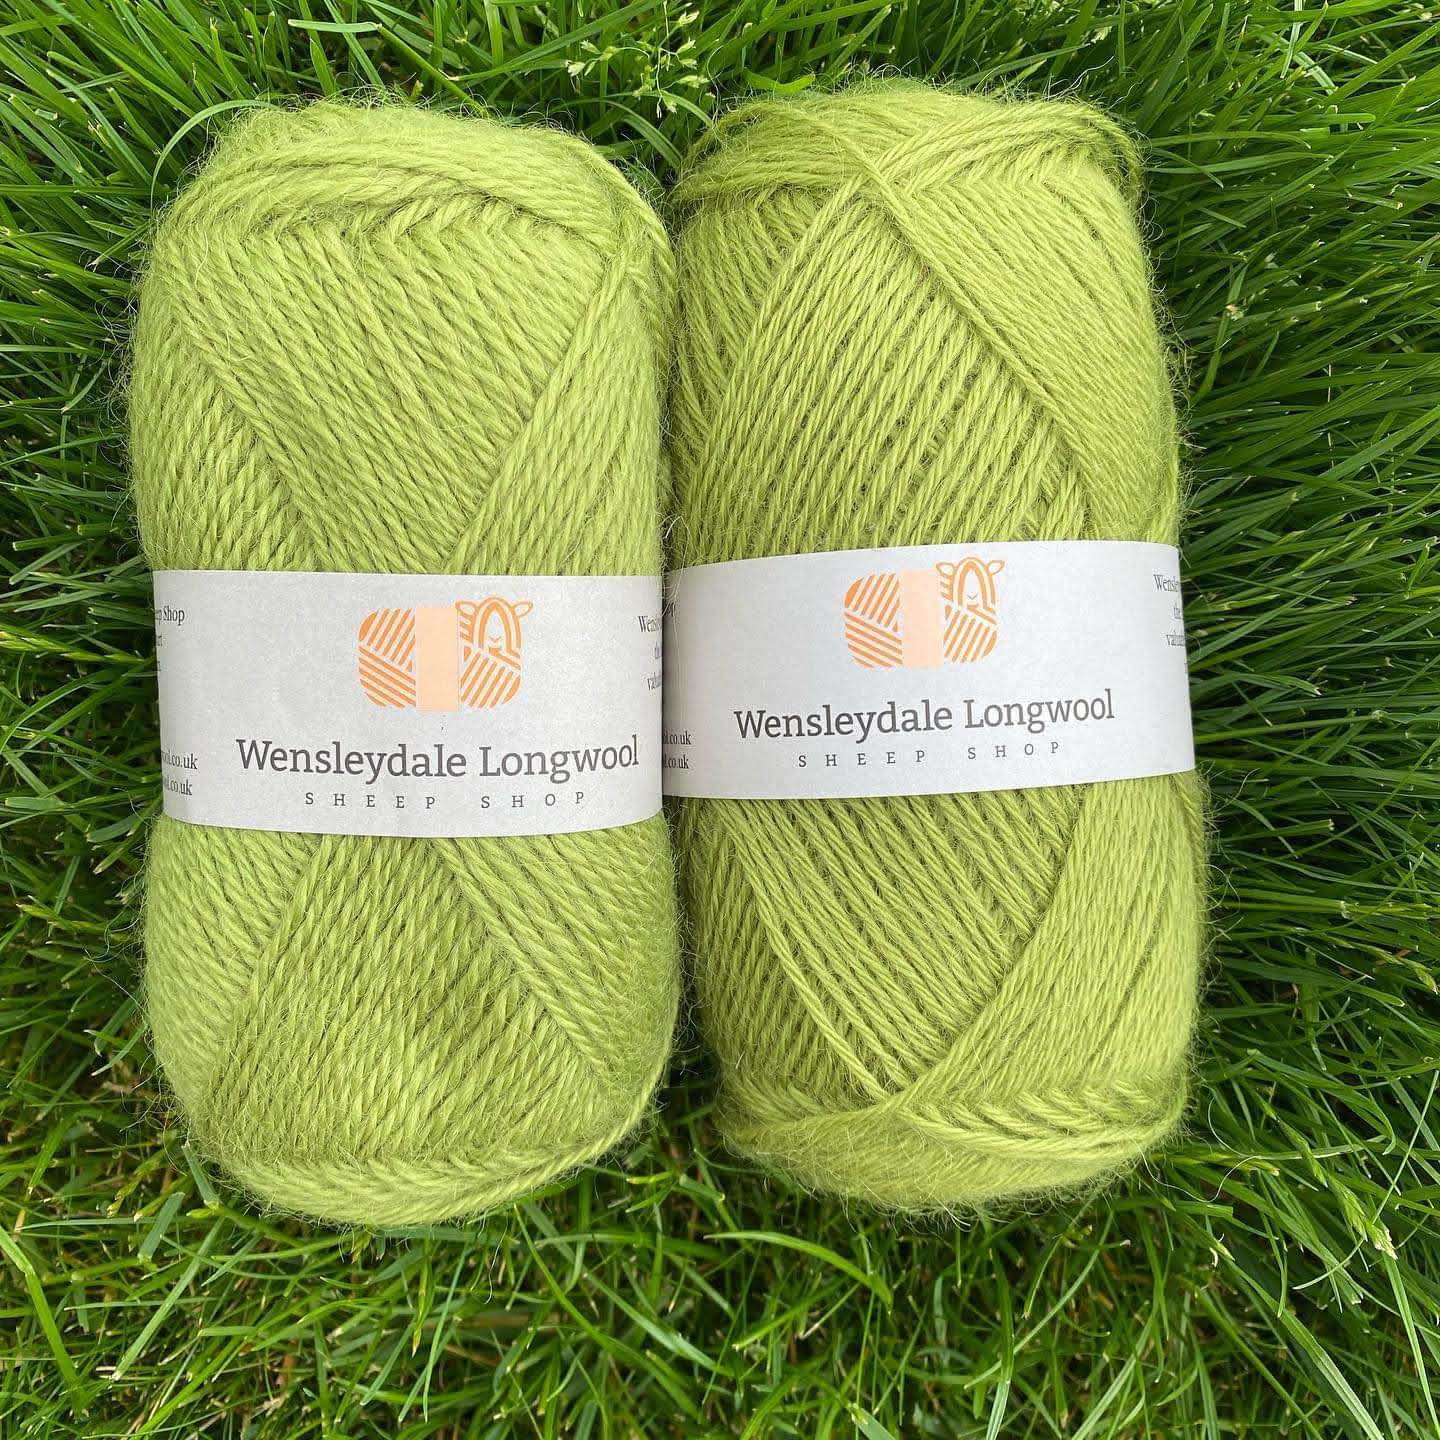 New Wensleydale yarn in Grassington colour both Aran and DK weights